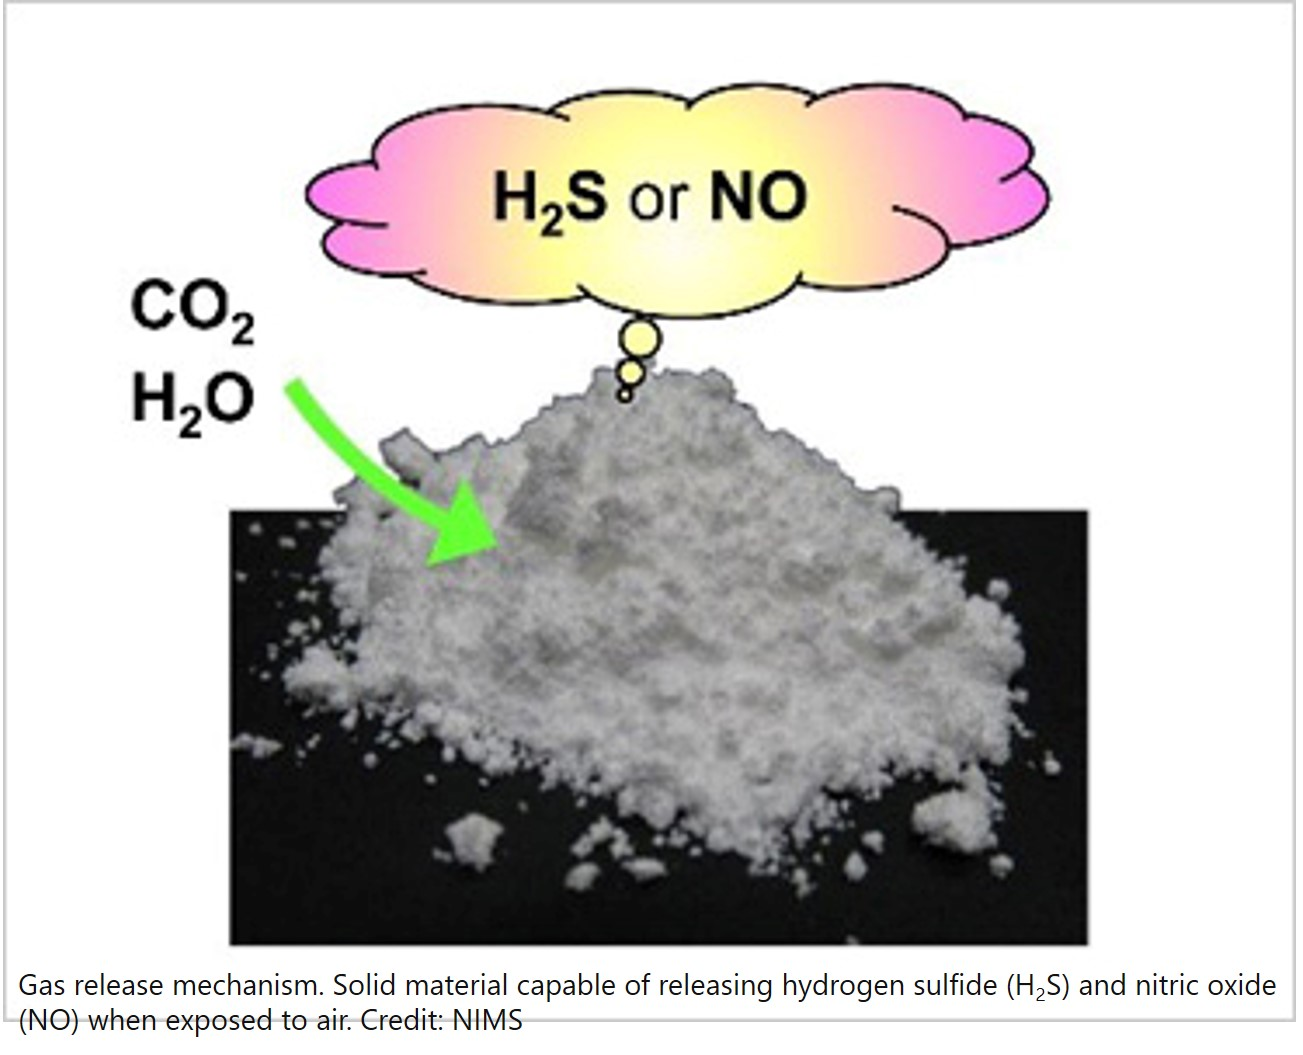 Development of a solid material capable of slowly releasing H2S and NO